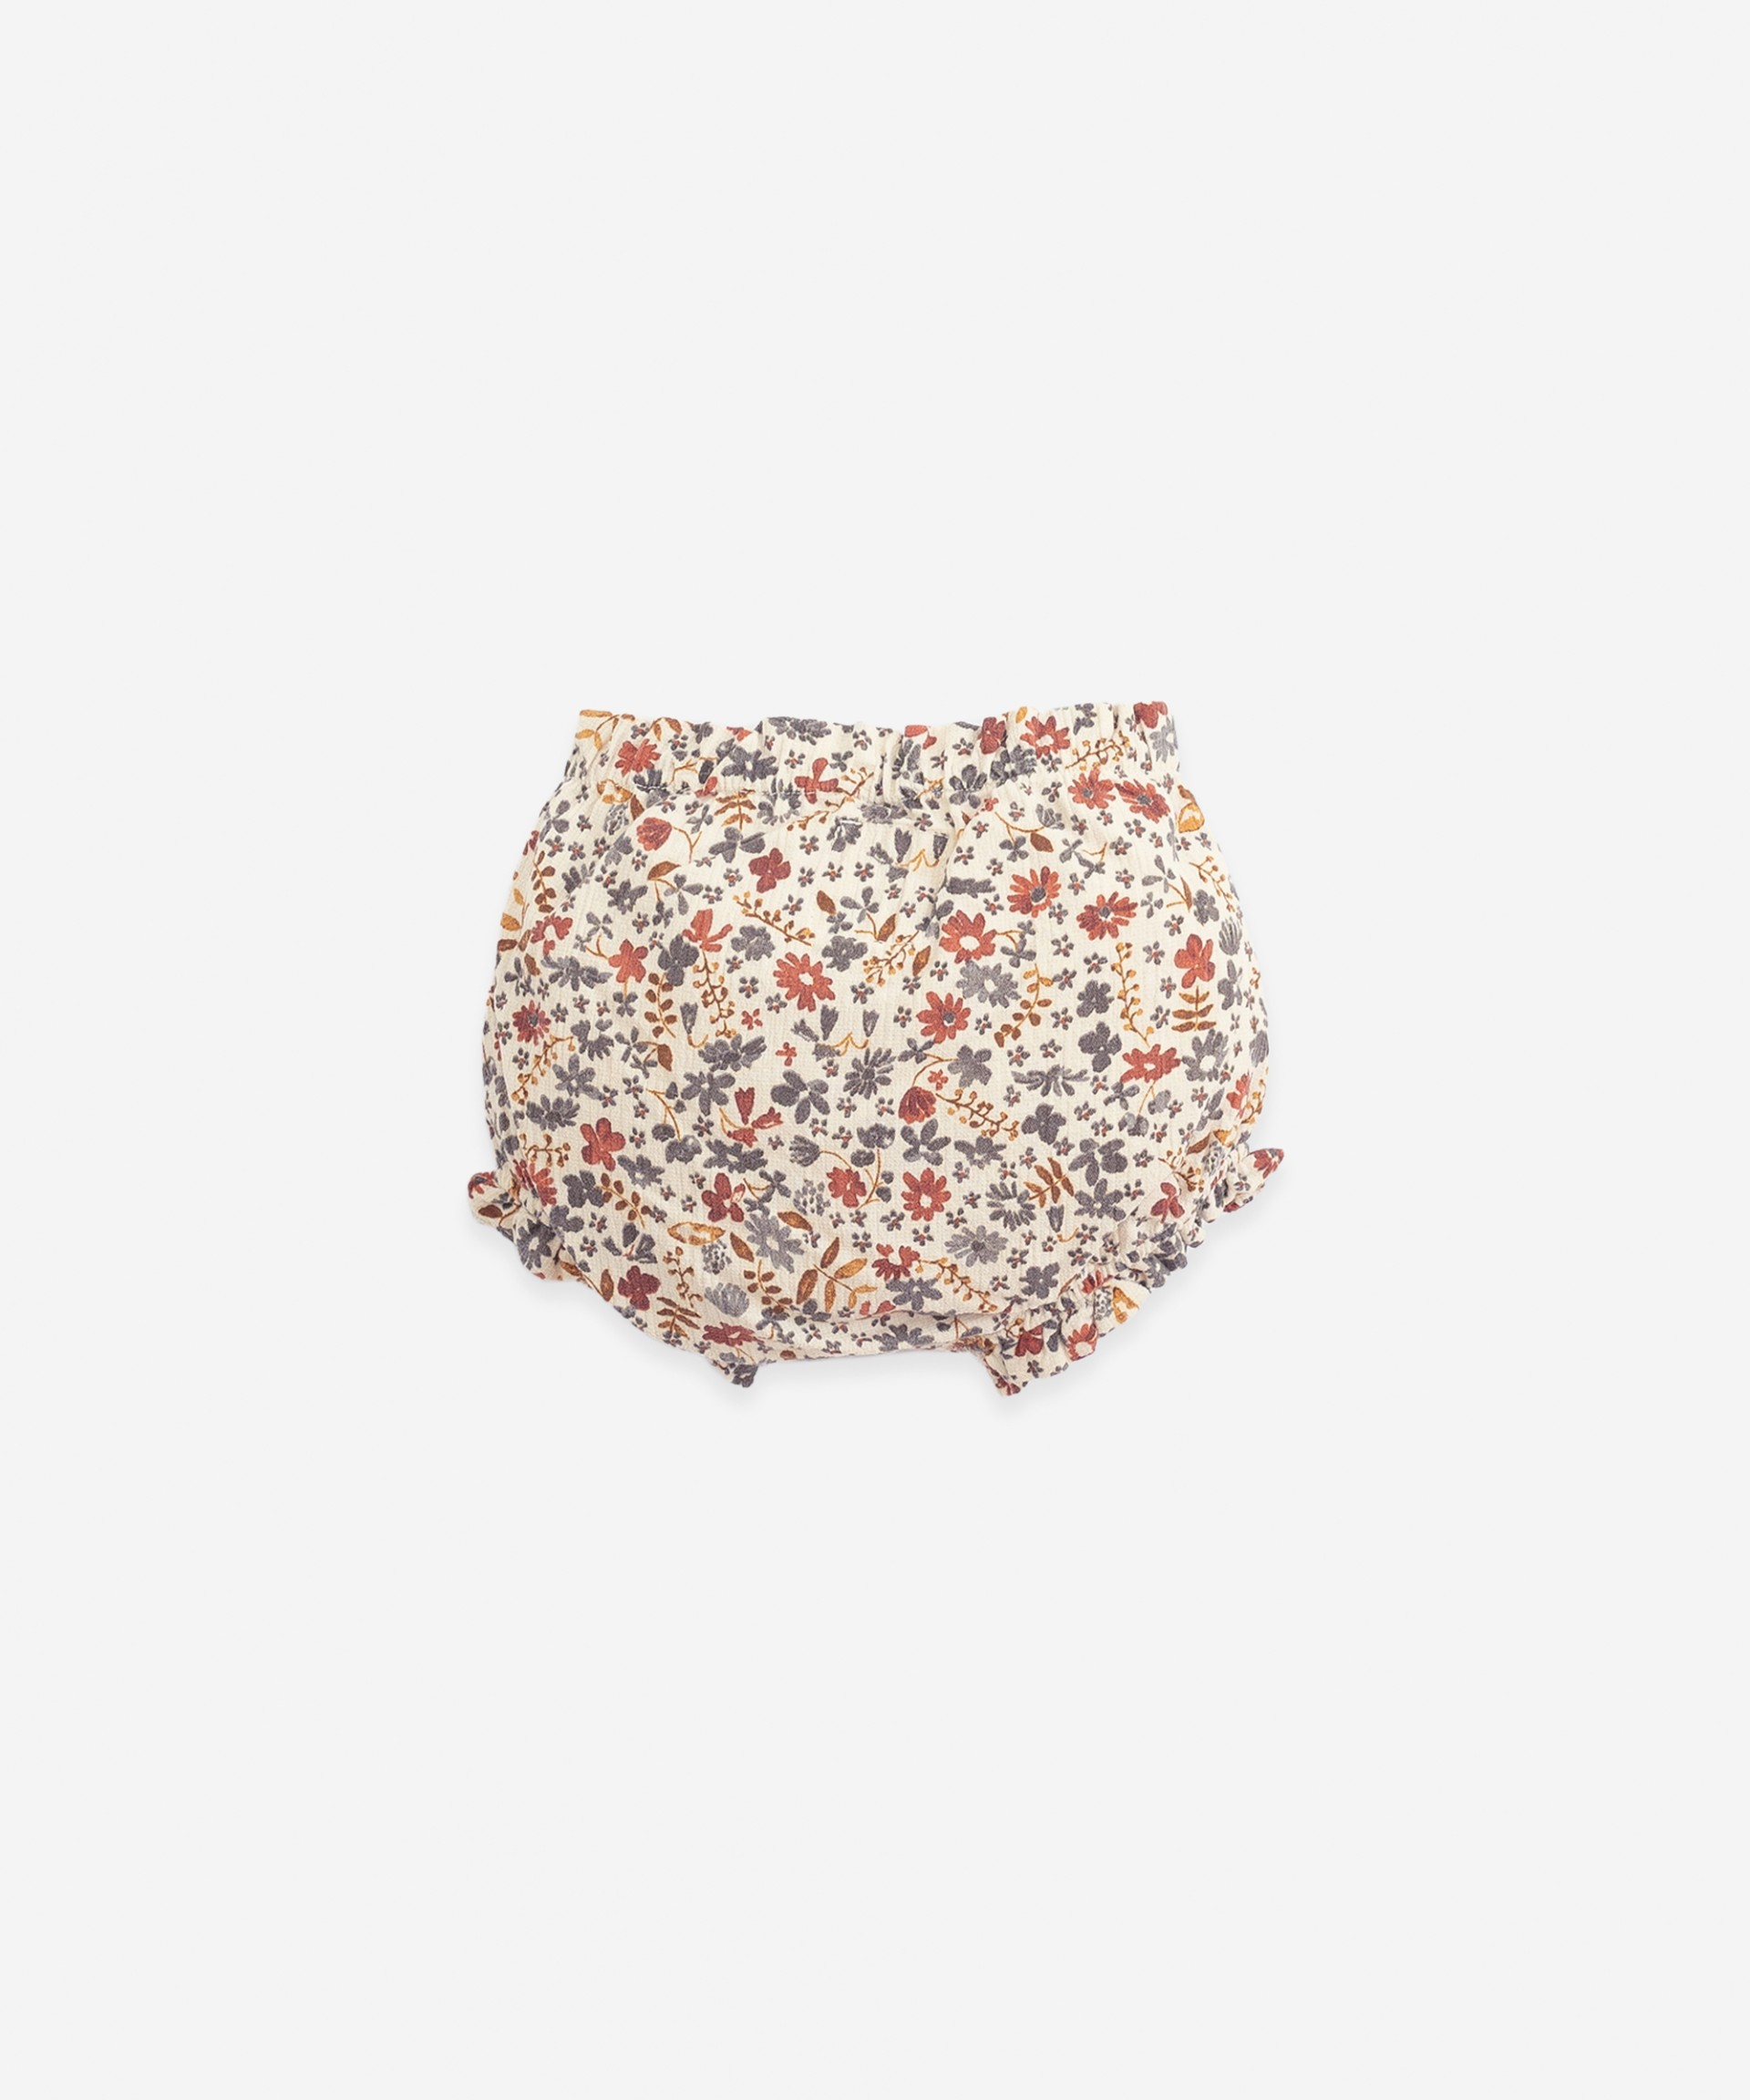 Underpants with flowers print | Botany